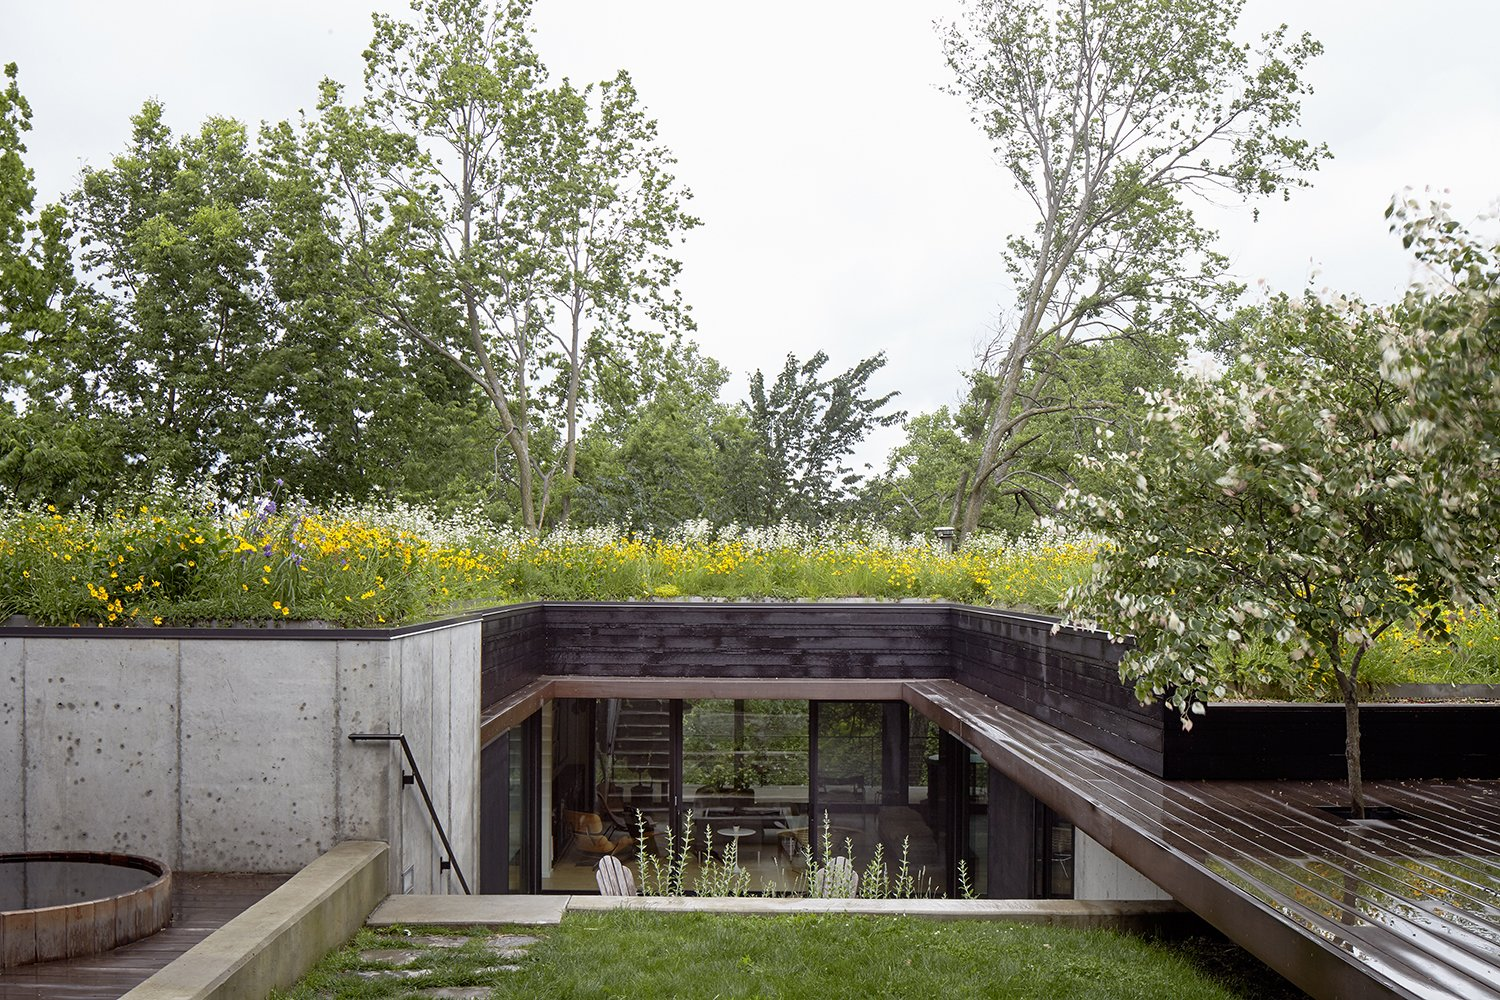 Grass, Small Patio, Porch, Deck, Rooftop, Wood Patio, Porch, Deck, Exterior, Green Roof Material, Concrete Siding Material, and Wood Siding Material Stained cedar, ipe, and concrete form the palette of this modern, verdant 2,500-square-foot home in Kansas City. Indigenous wildflowers and native grasses grow on top of the structure; this planted roof also helps insulate the home and limited its energy needs.  Photos from Nature Reigns Supreme at a Verdant Kansas City Home